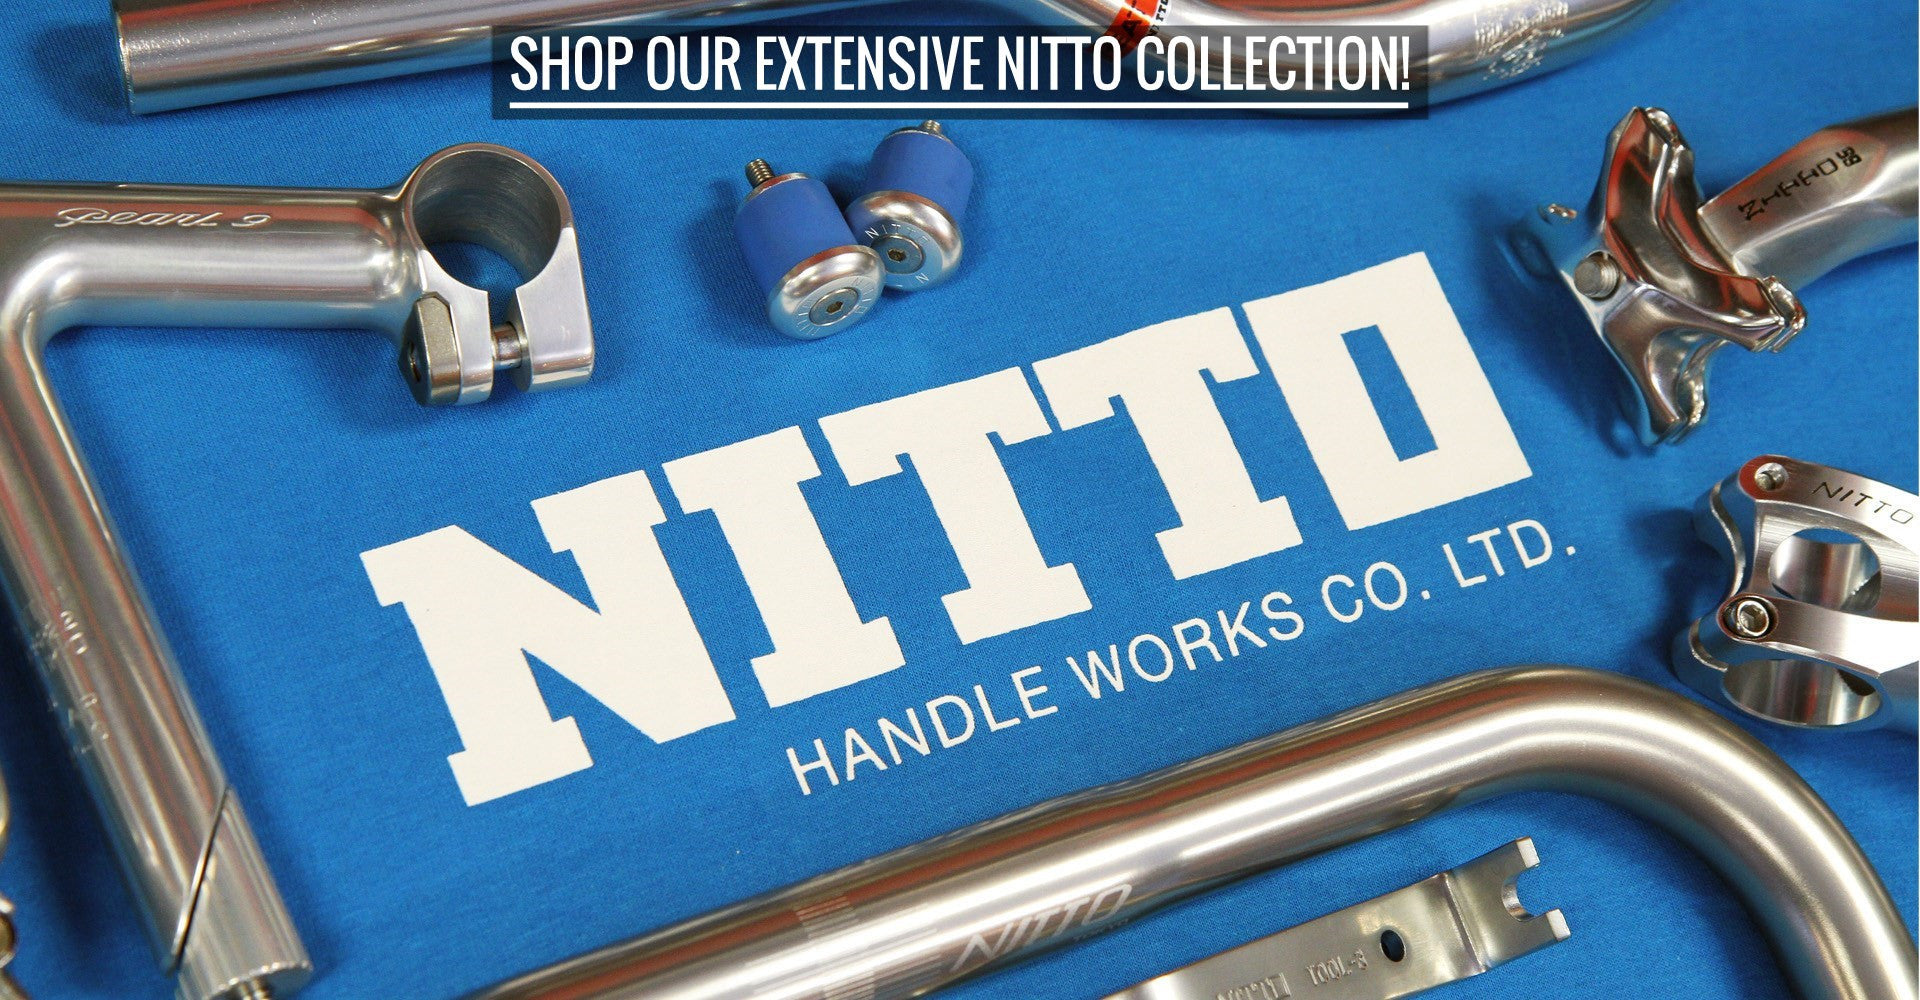 Shop all Nitto components now!